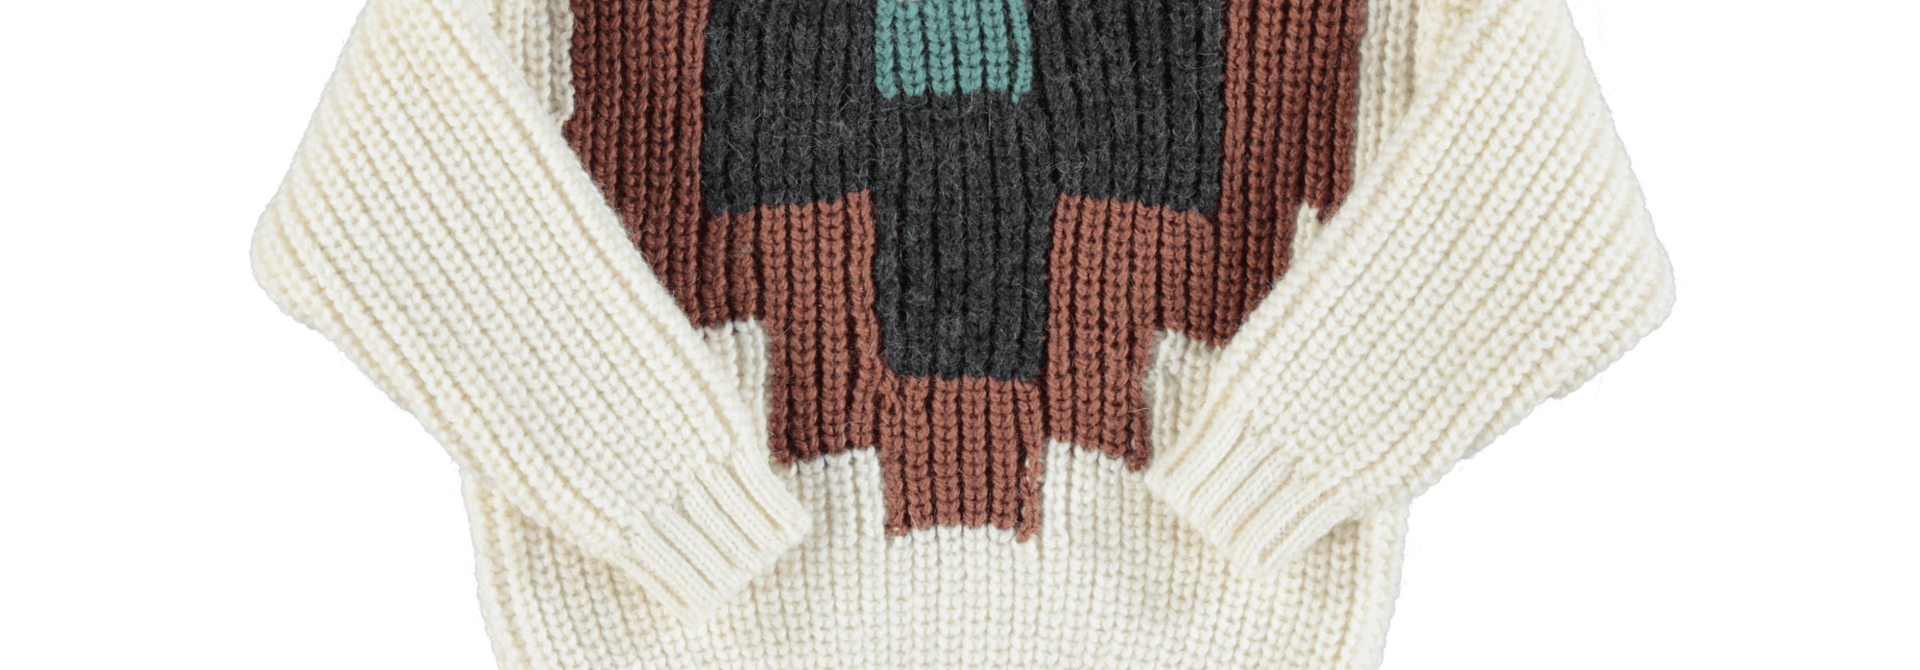 Sweater multicolor pattern